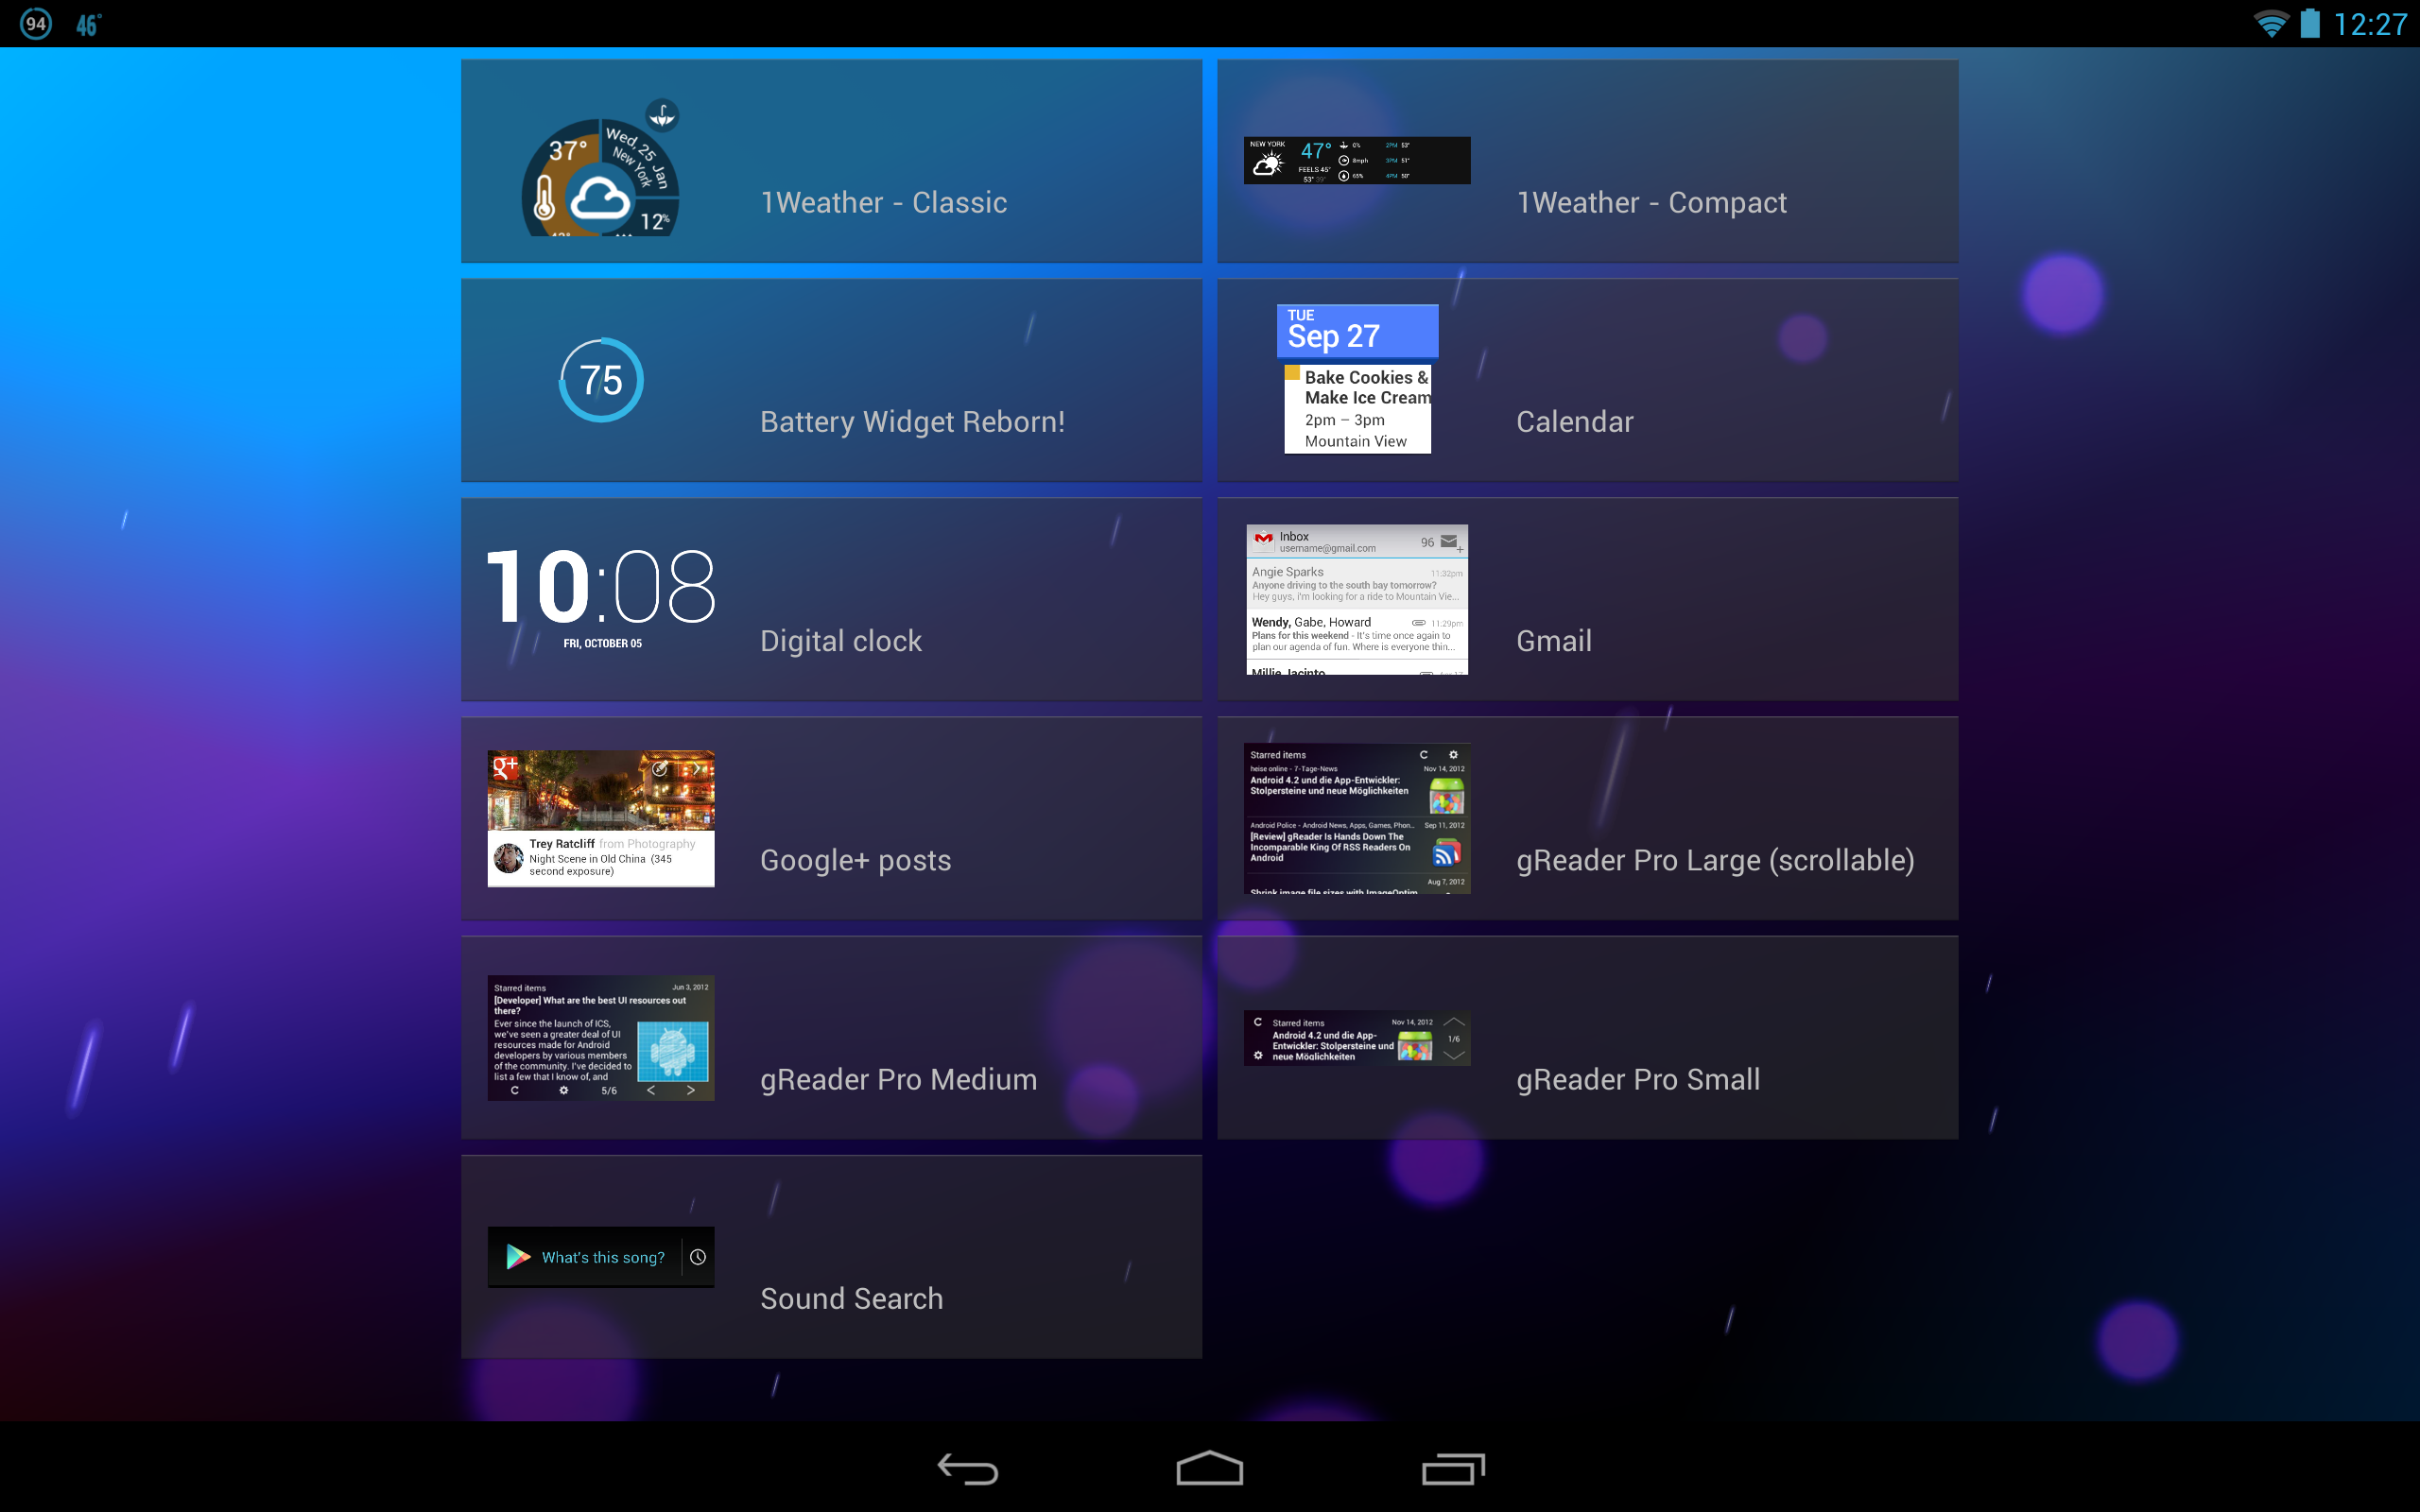 OneLouder Apps' 1Weather Hits v2, Brings New UI, Tablet Support